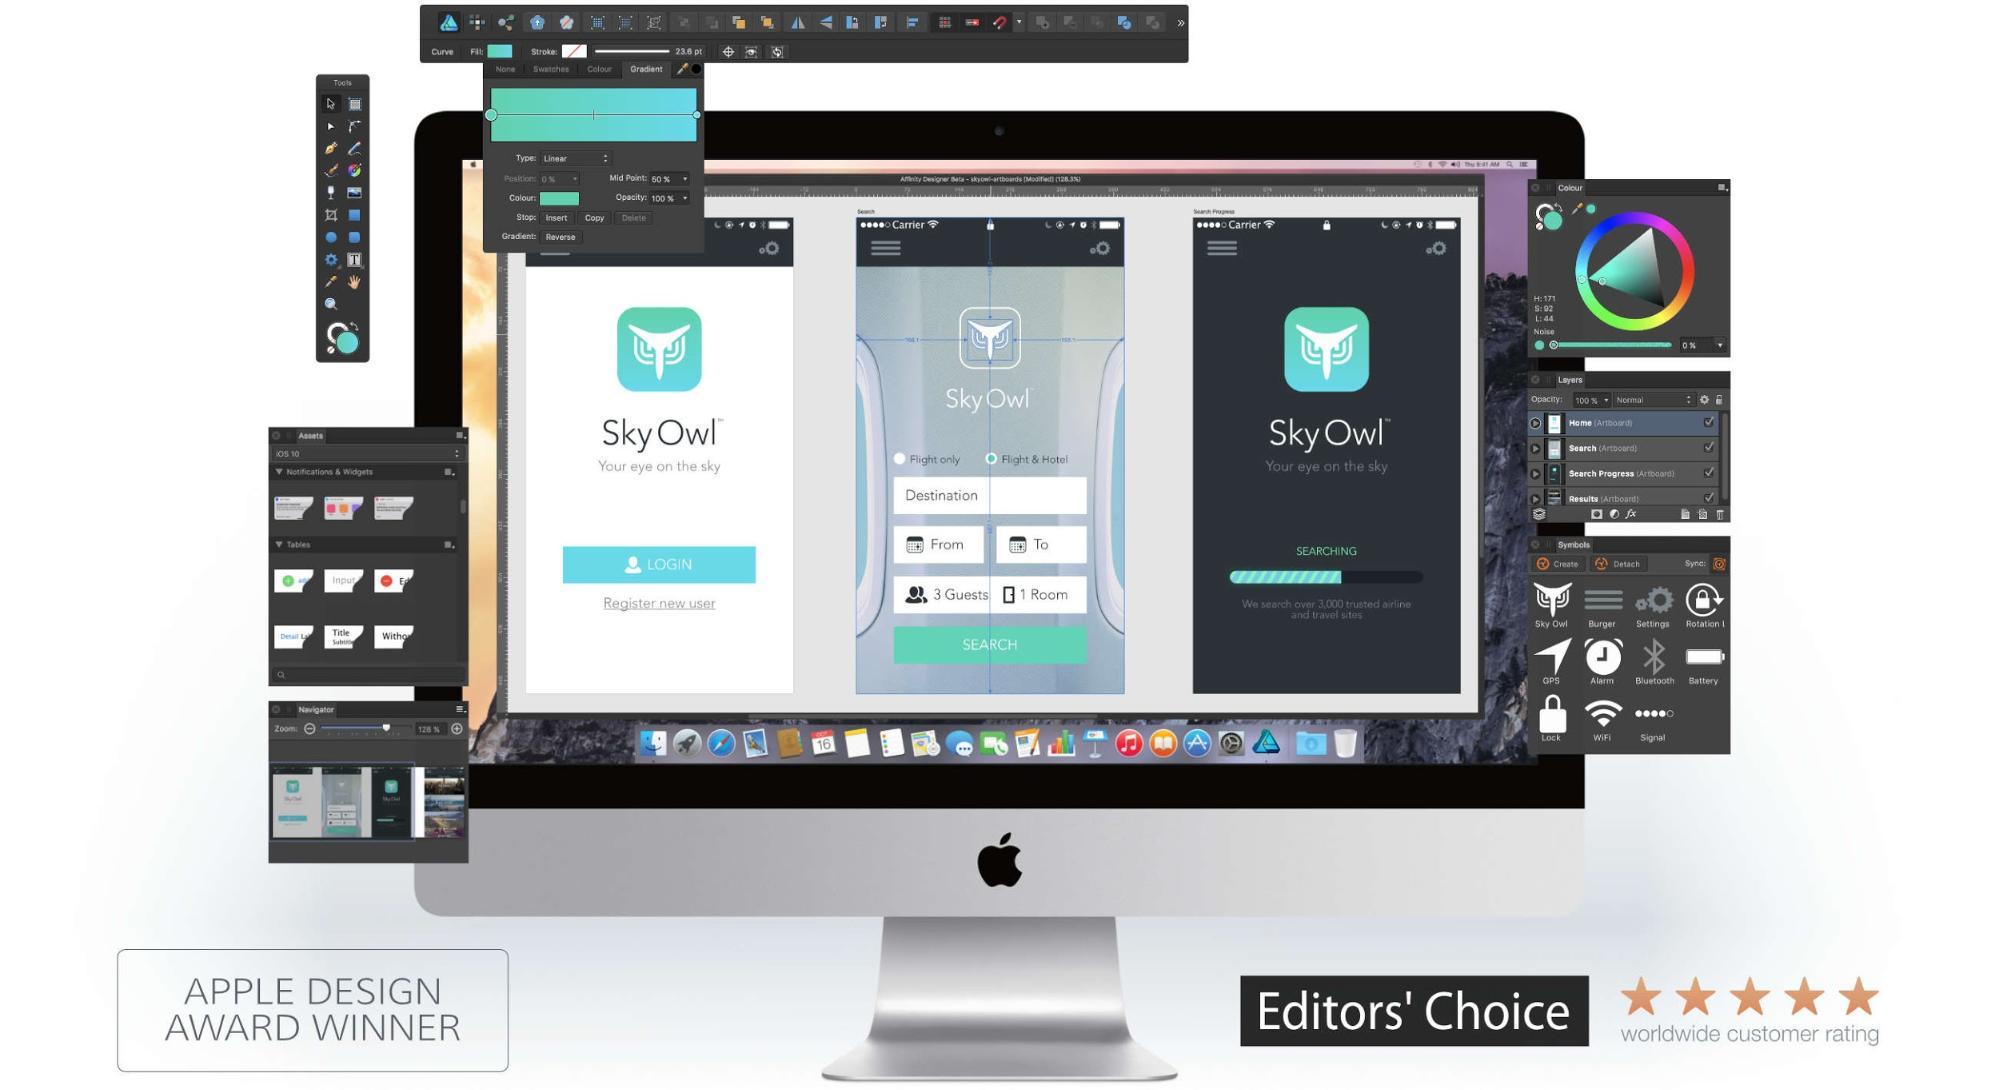 Affinity Designers get a UI-focused update